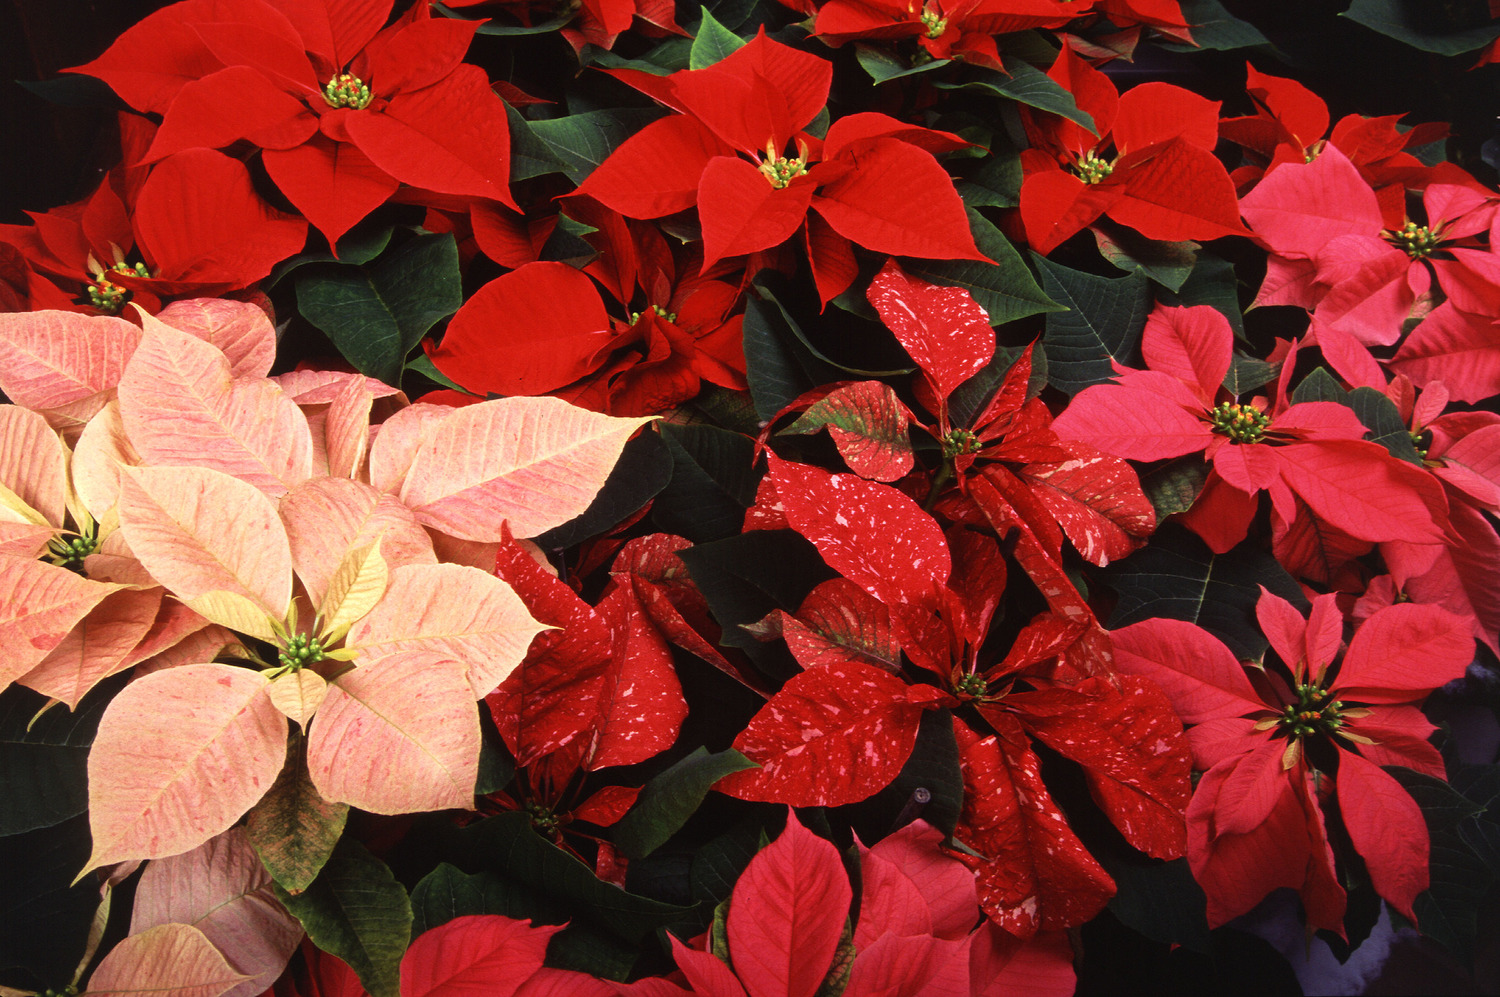 Christmas Imagery.Poinsettias Christmas Imagery Justin Stelter Landscape